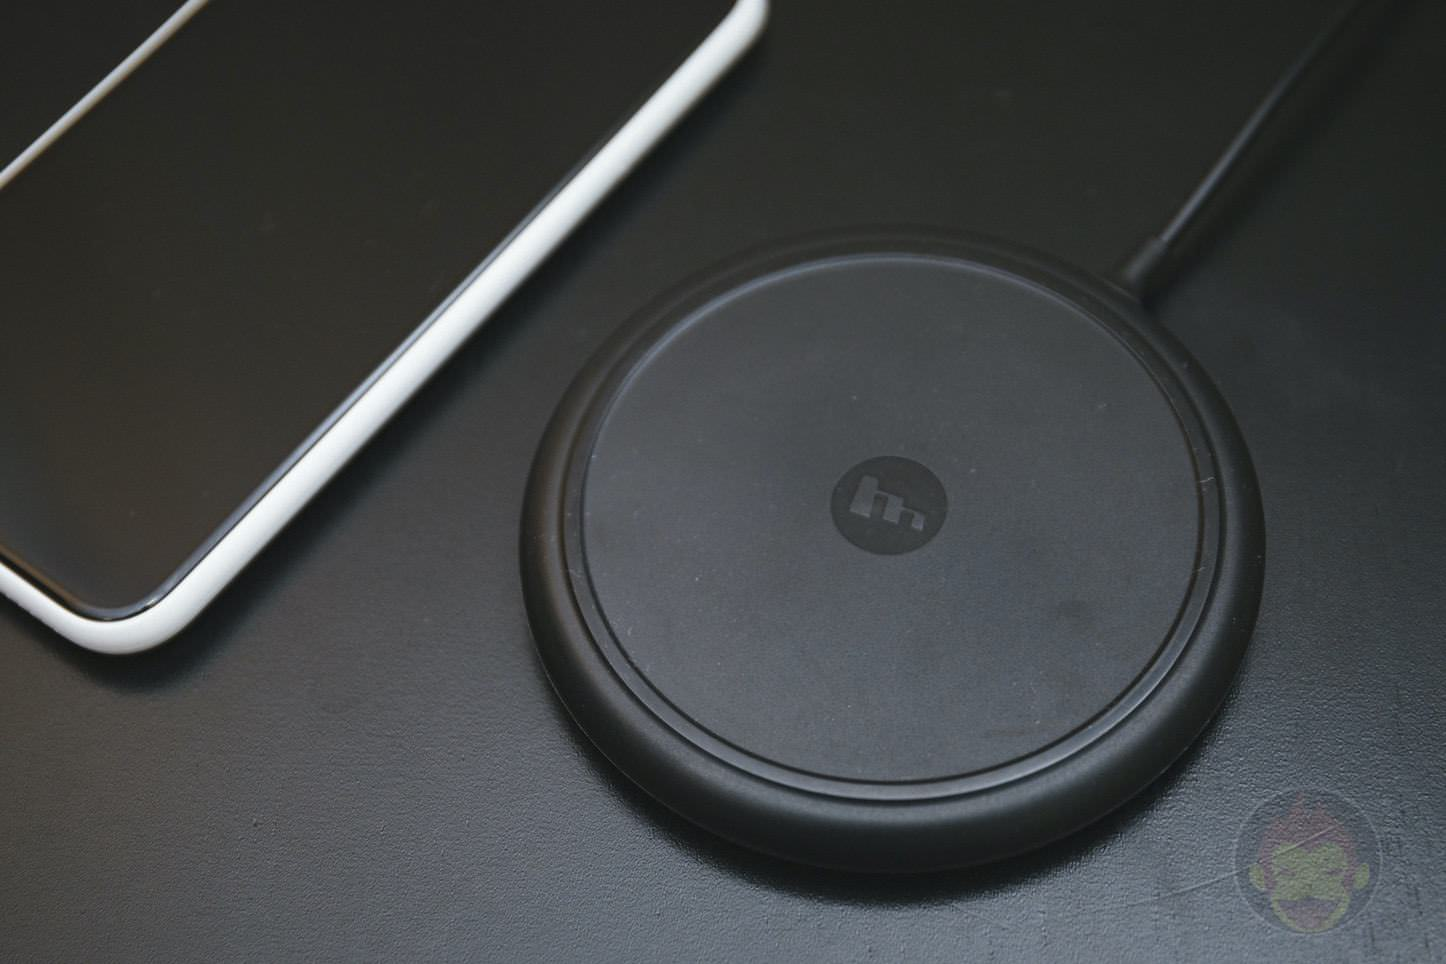 Mophie wireless charging base 01